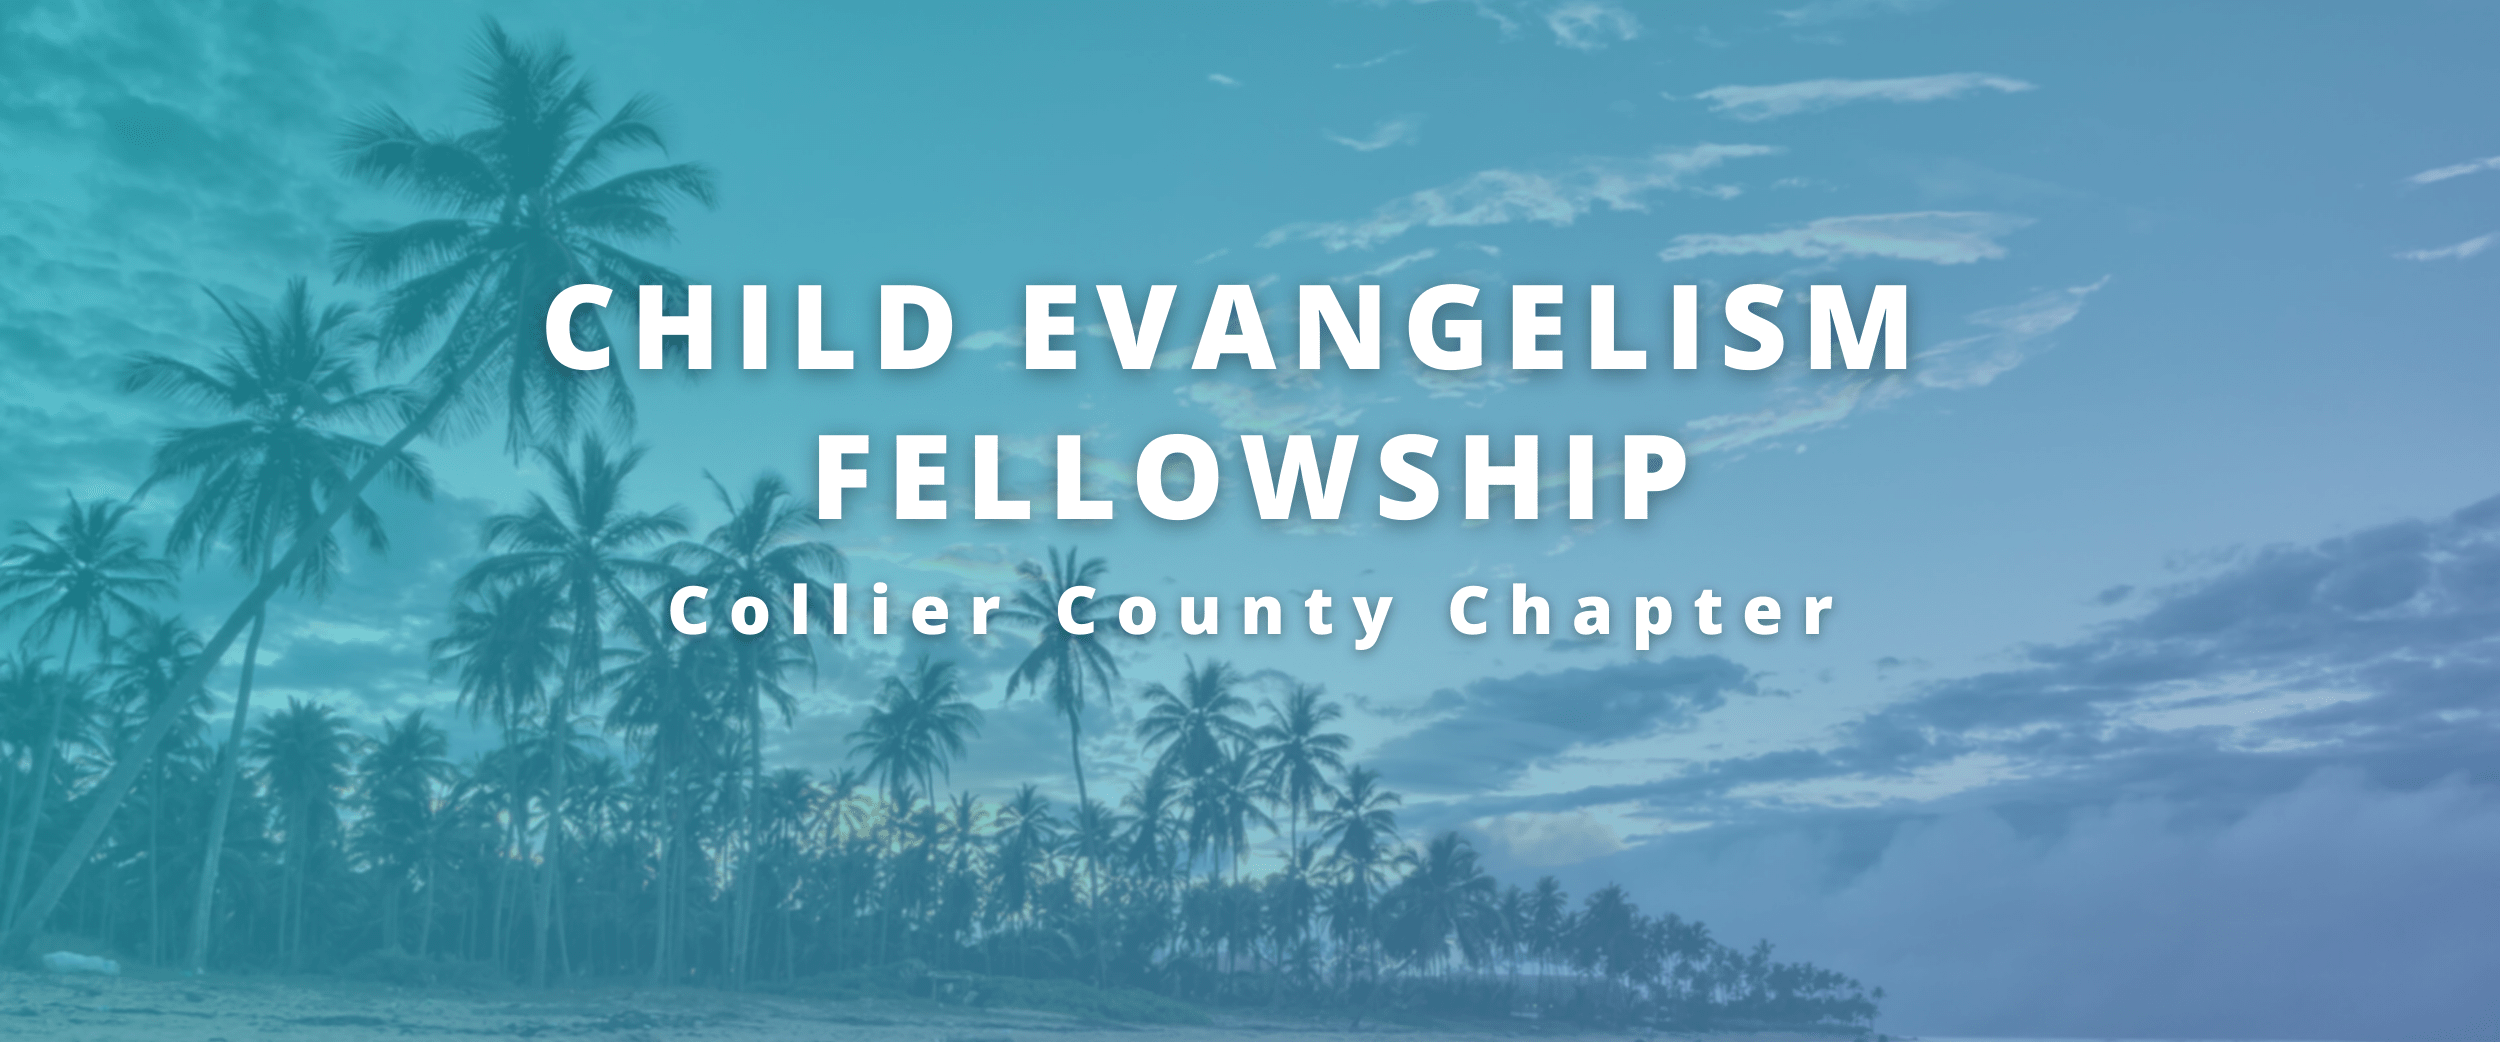 Child Evangelism Fellowship of Collier County Naples, Immokalee, Marco Island, Everglades, Florida